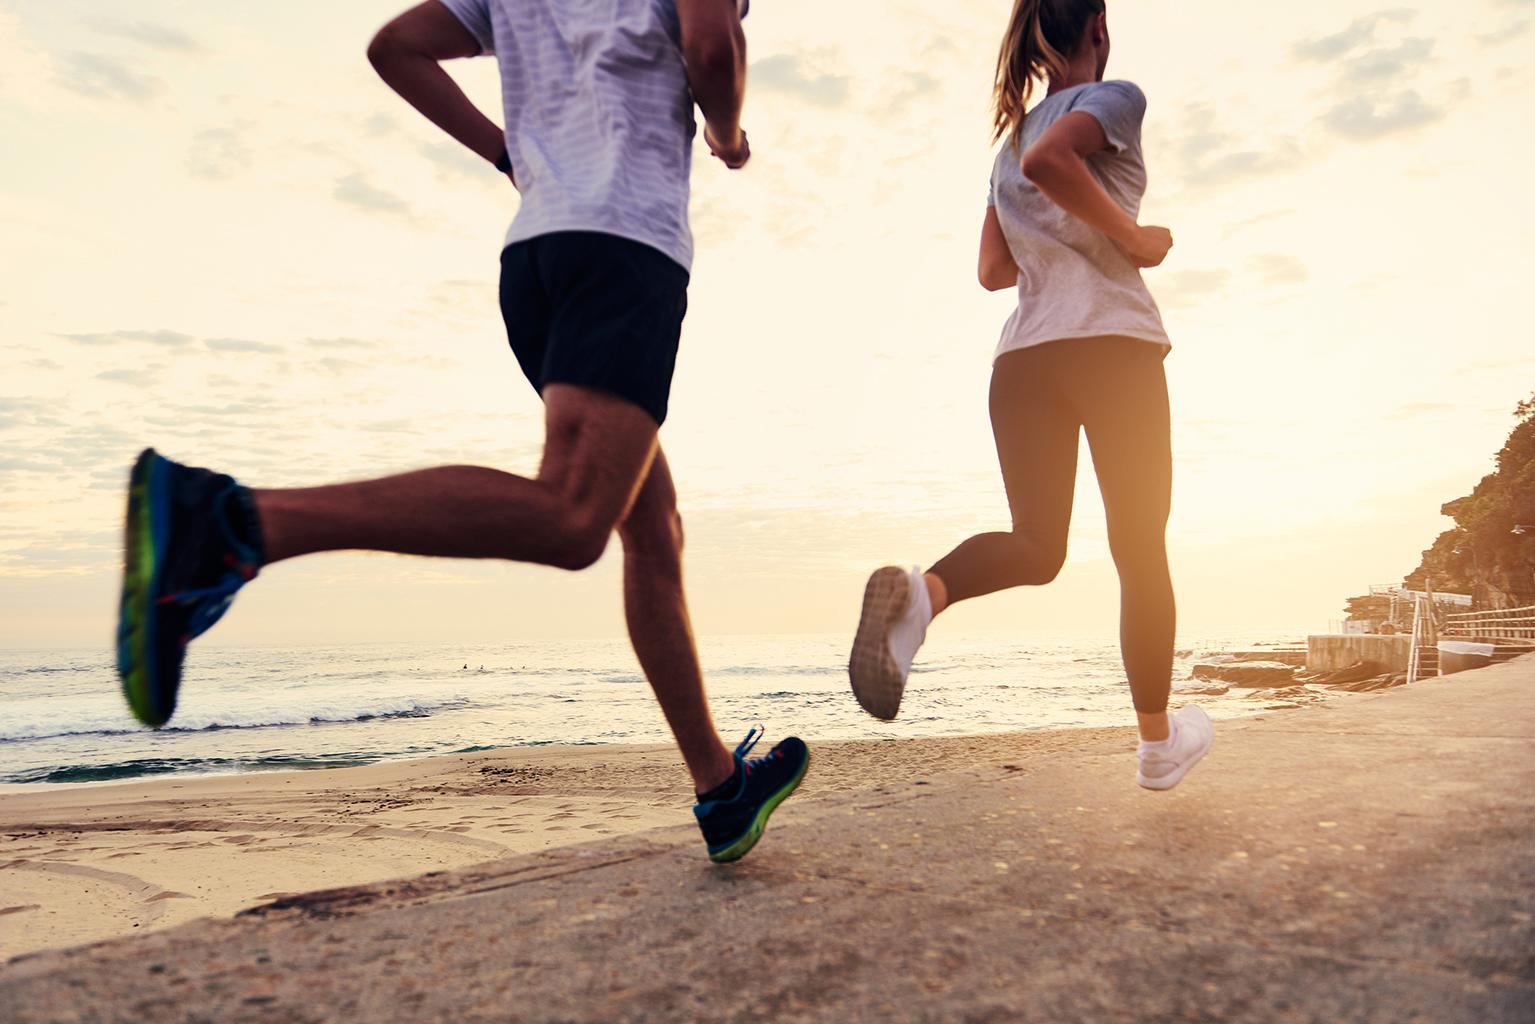 Running can reduce risk of early death, suggests new study